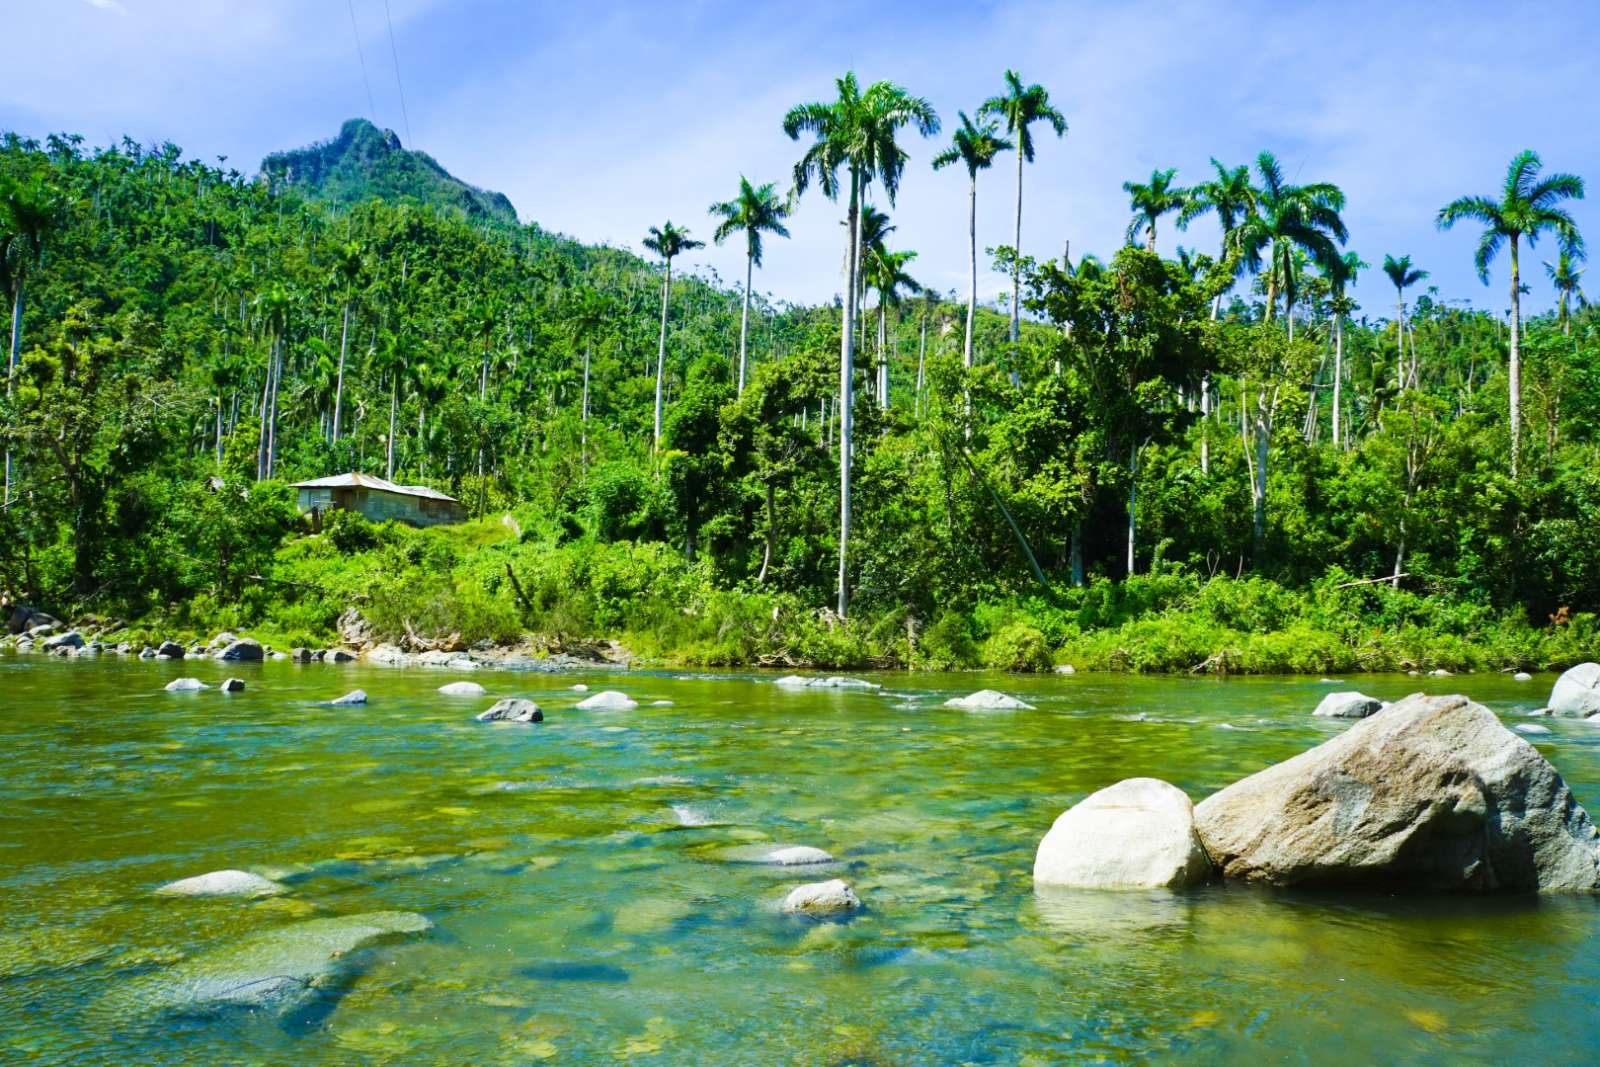 Scenic river running through the Baracoa countryside